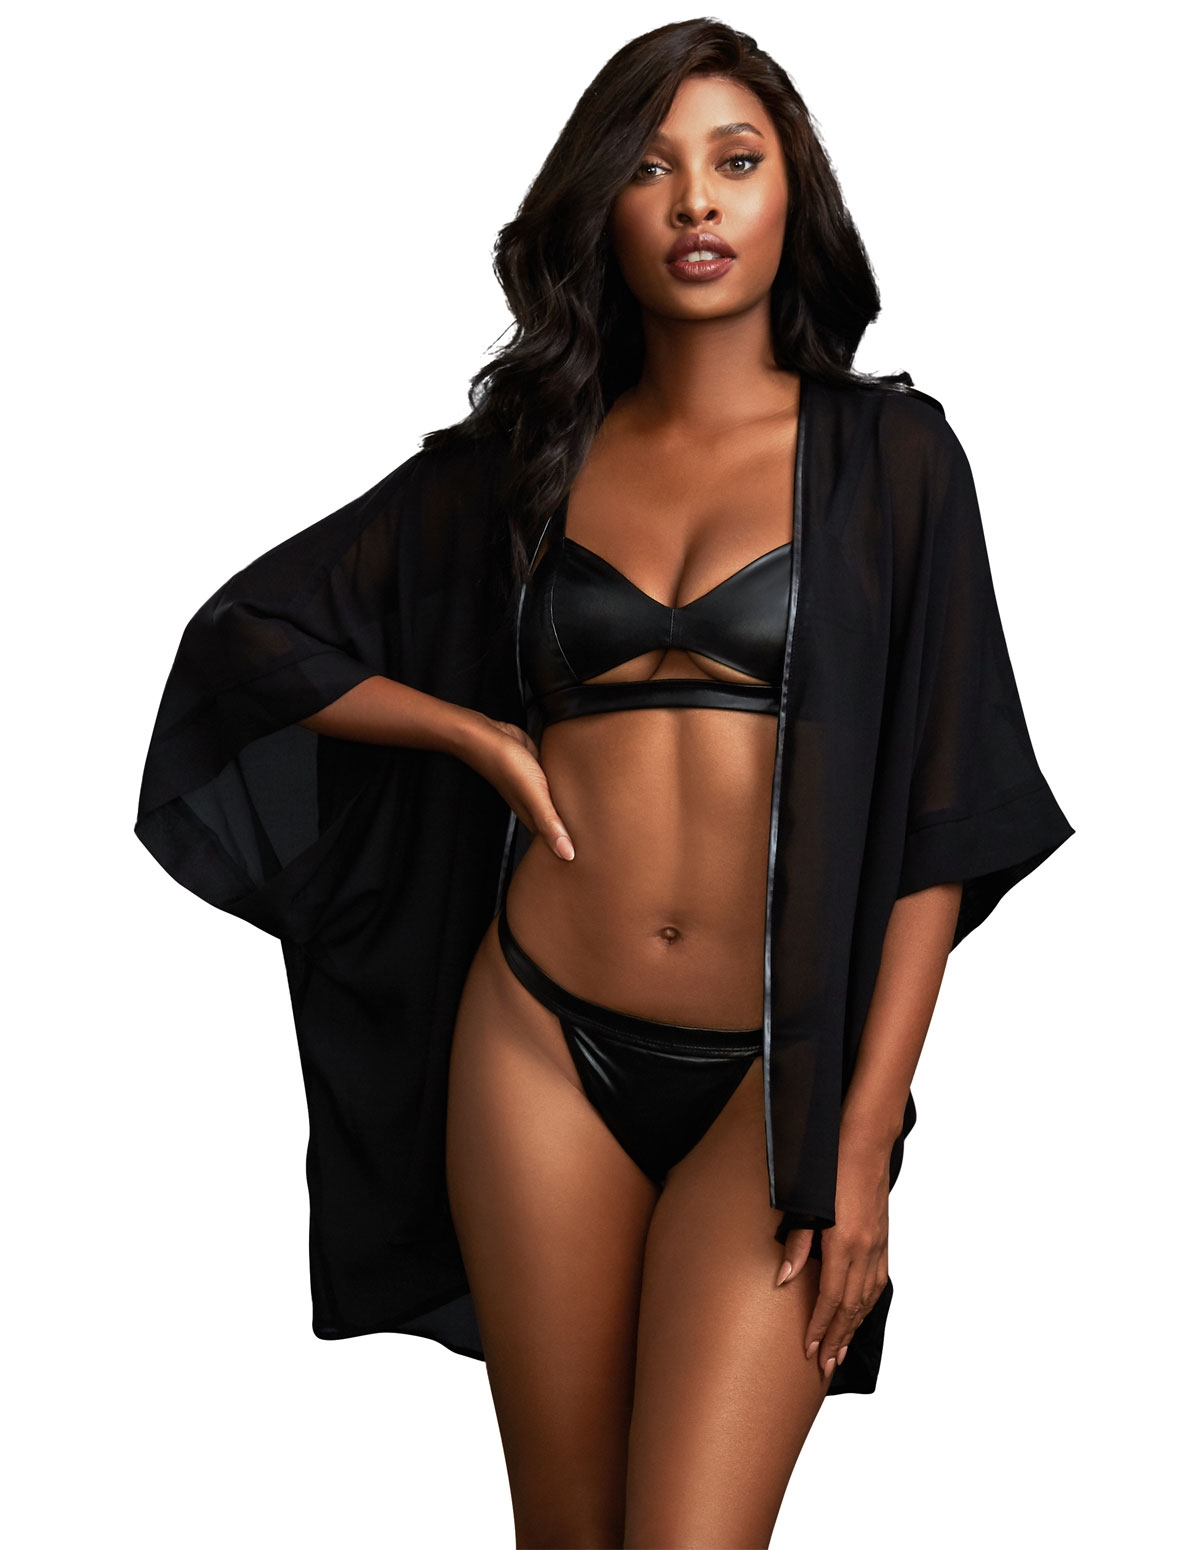 Wet Look Bra Set & Chiffon Robe